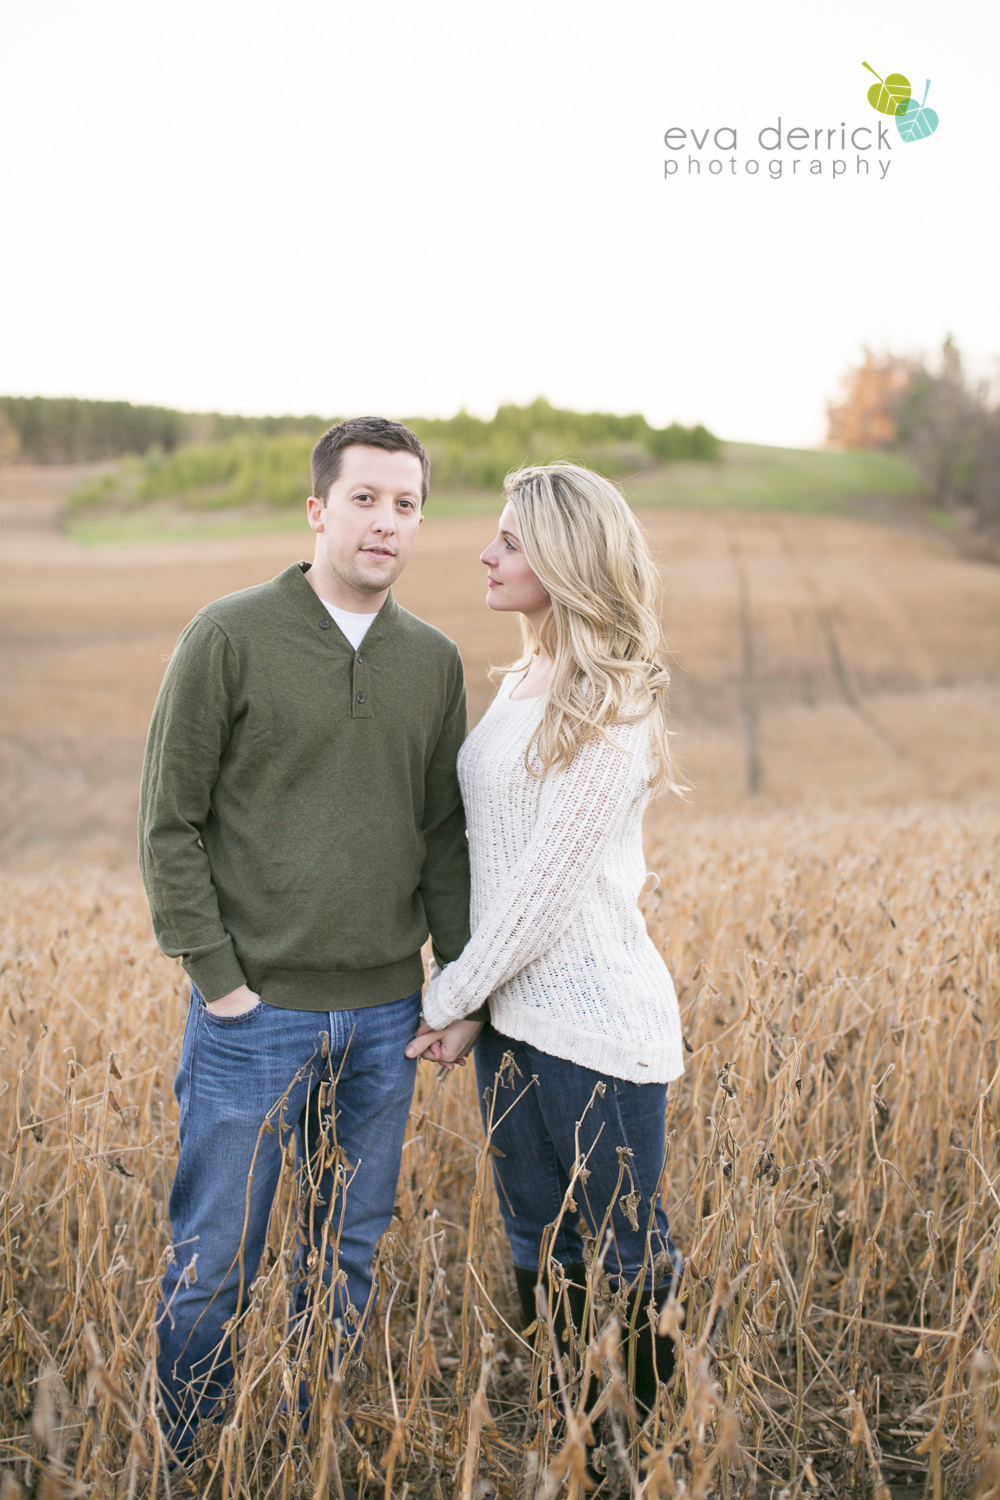 Albion-Hills-Photographer-Engagement-Session-Alanna-Matt-photography-by-Eva-Derrick-Photography-031.JPG